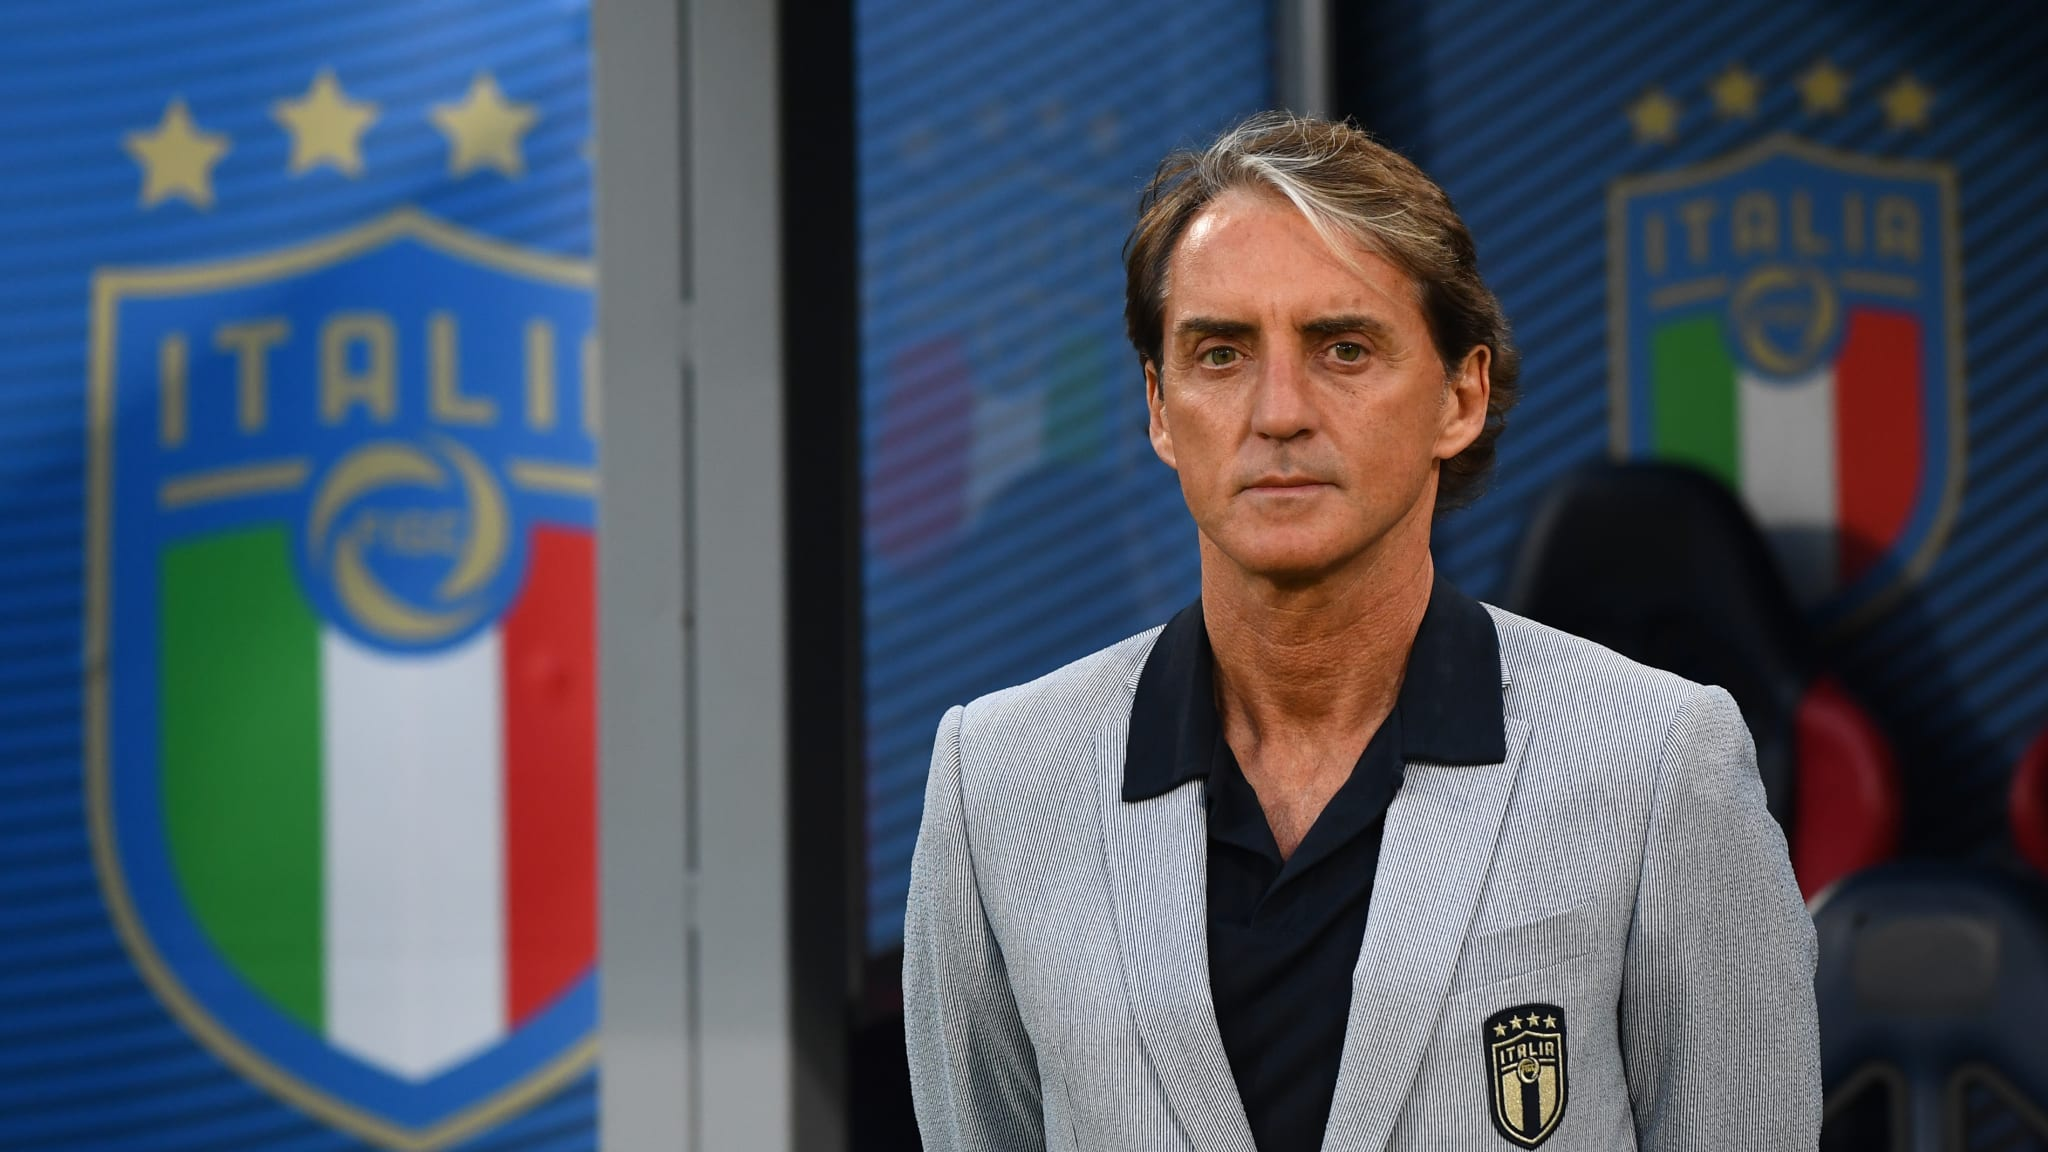 Head coach Italy Roberto Mancini looks on during the international friendly match between Italy and Czech Republic at on June 04, 2021 in Bologna, Italy.